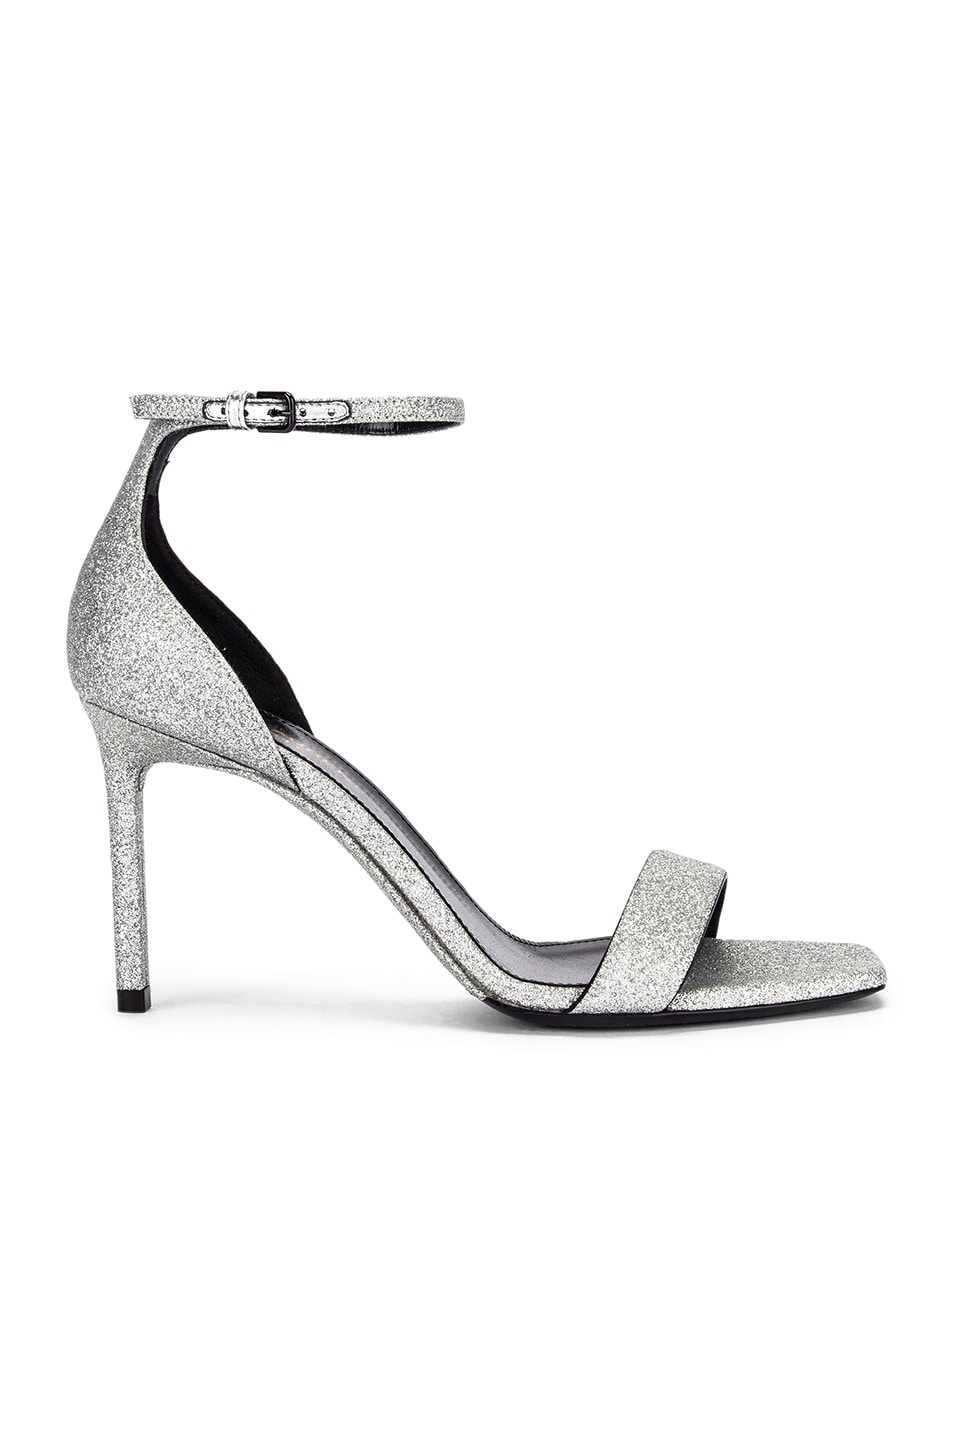 Image 1 of Saint Laurent Amber Ankle Strap Sandals in Argent